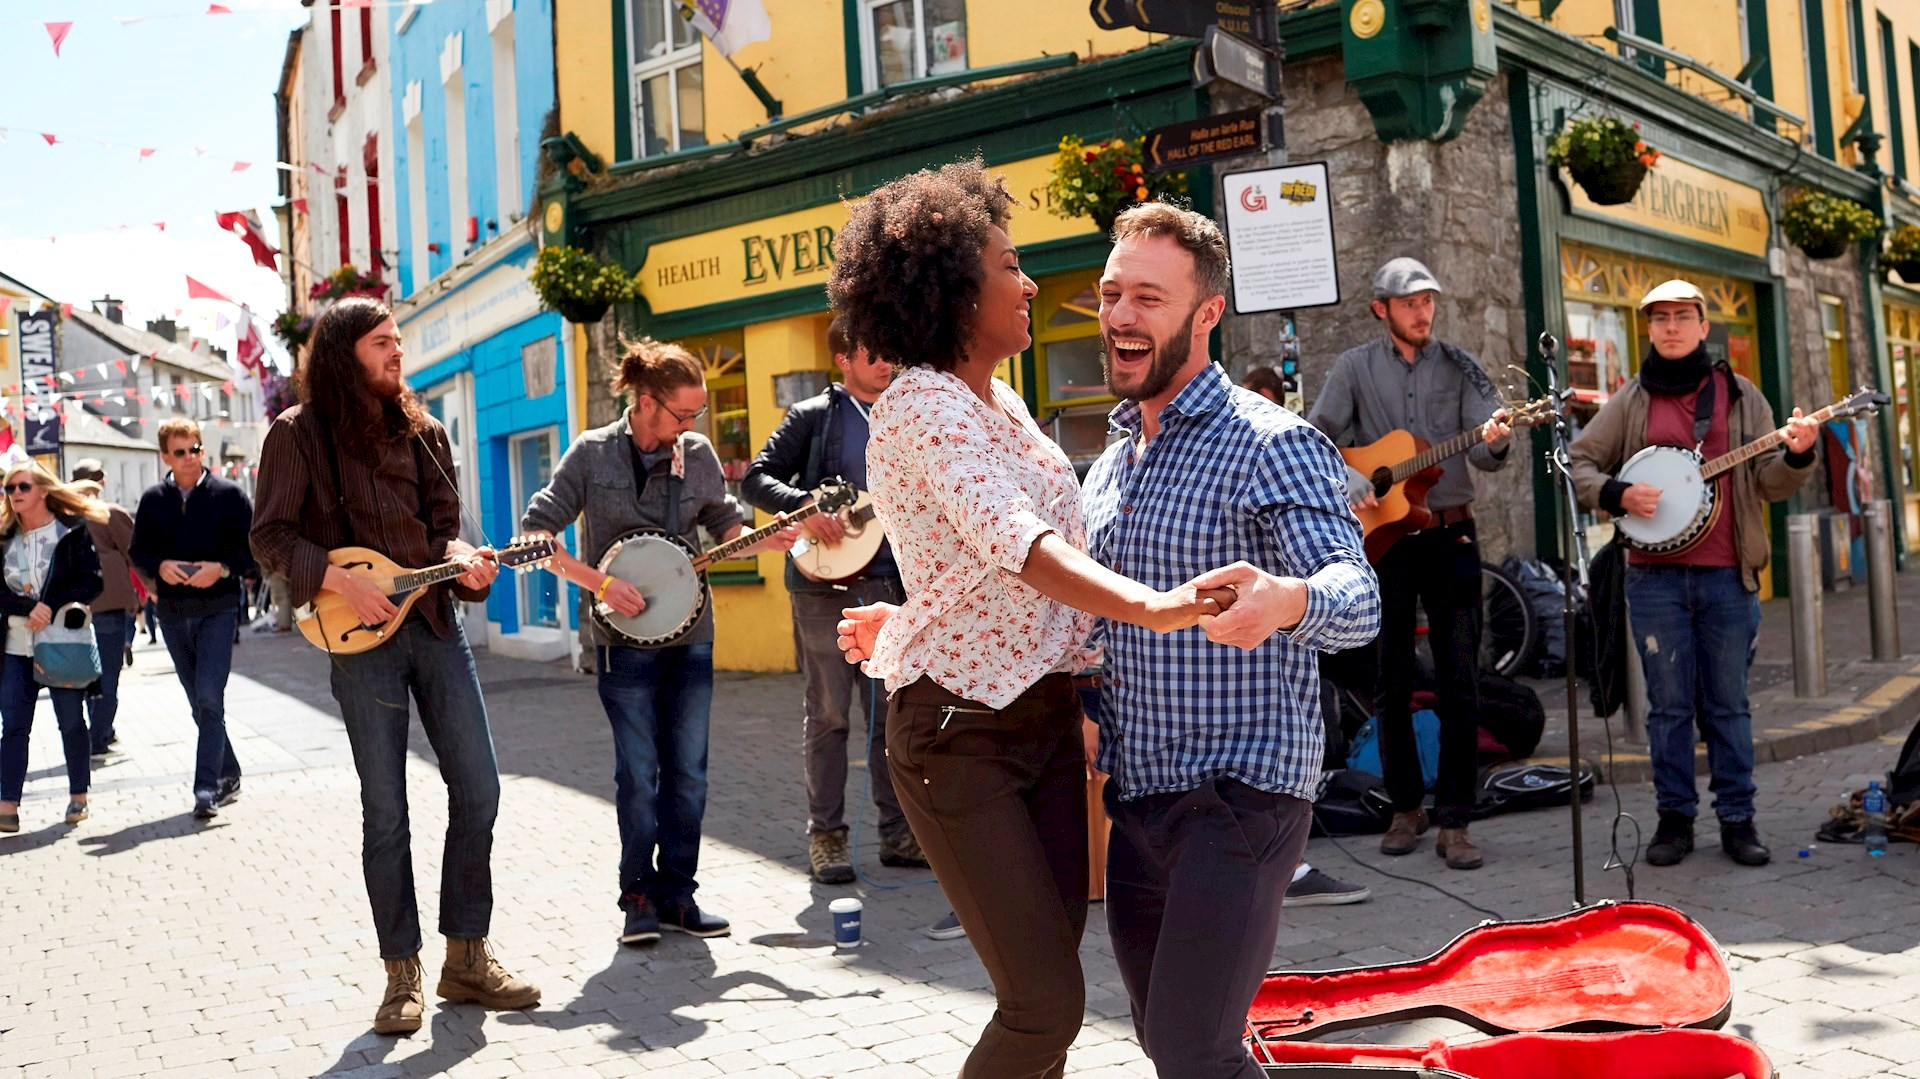 Couple dancing in streets of Galway